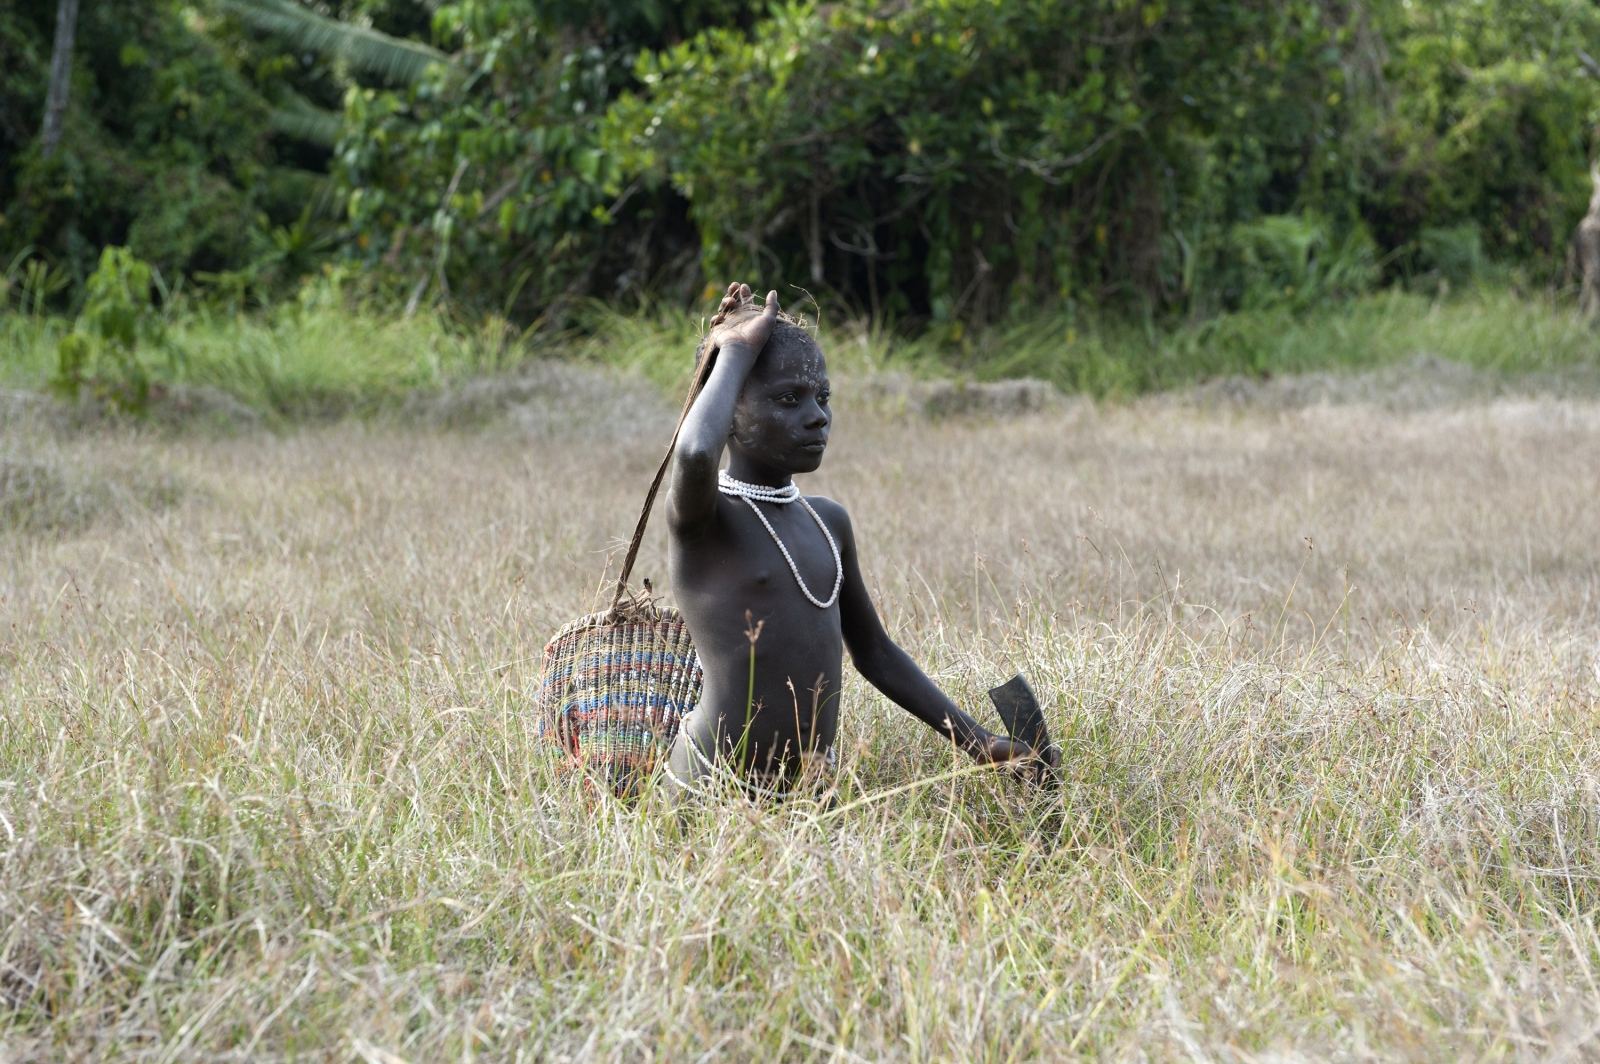 Art and Documentary Photography - Loading jarawa_beilvert_girl_bursting_from_tall_grass.jpg